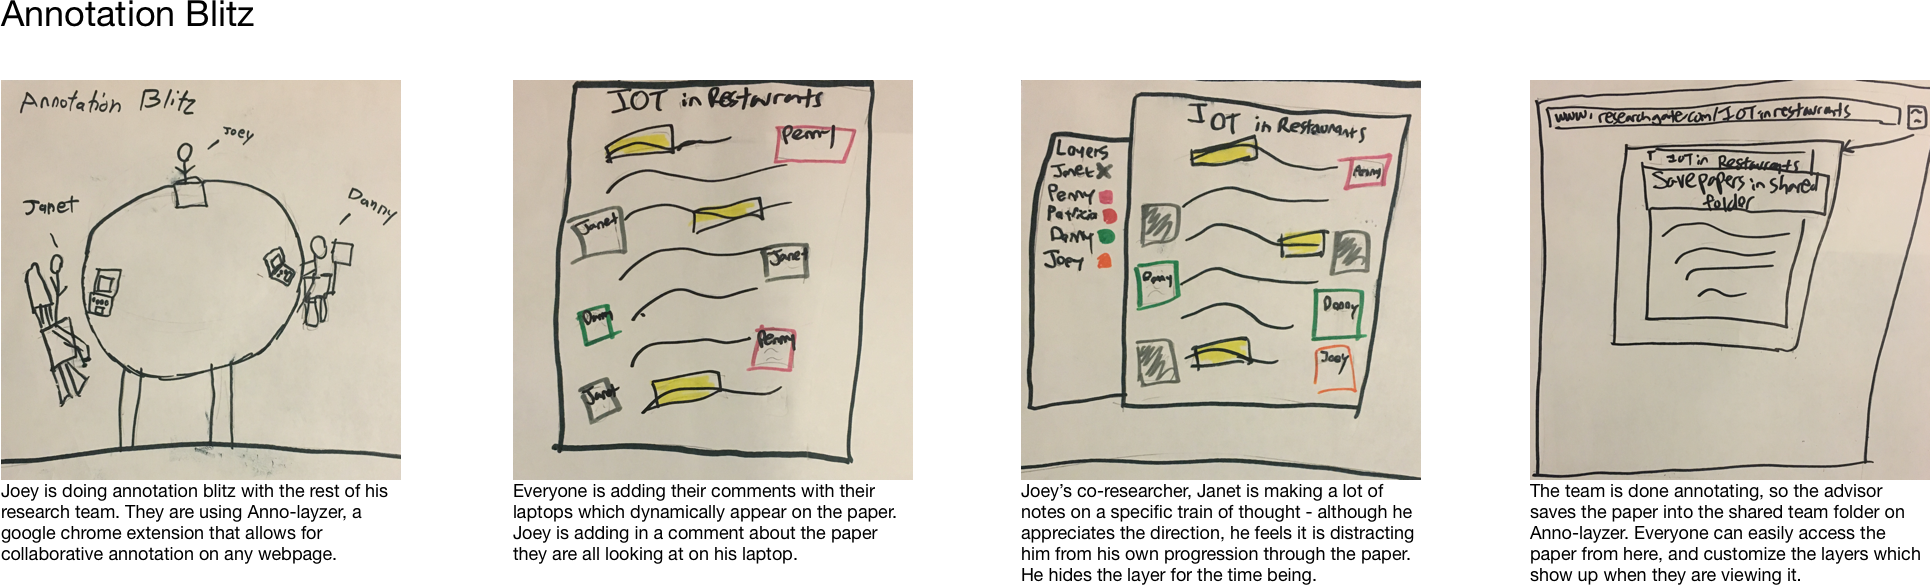 Collaborative Annotations.png